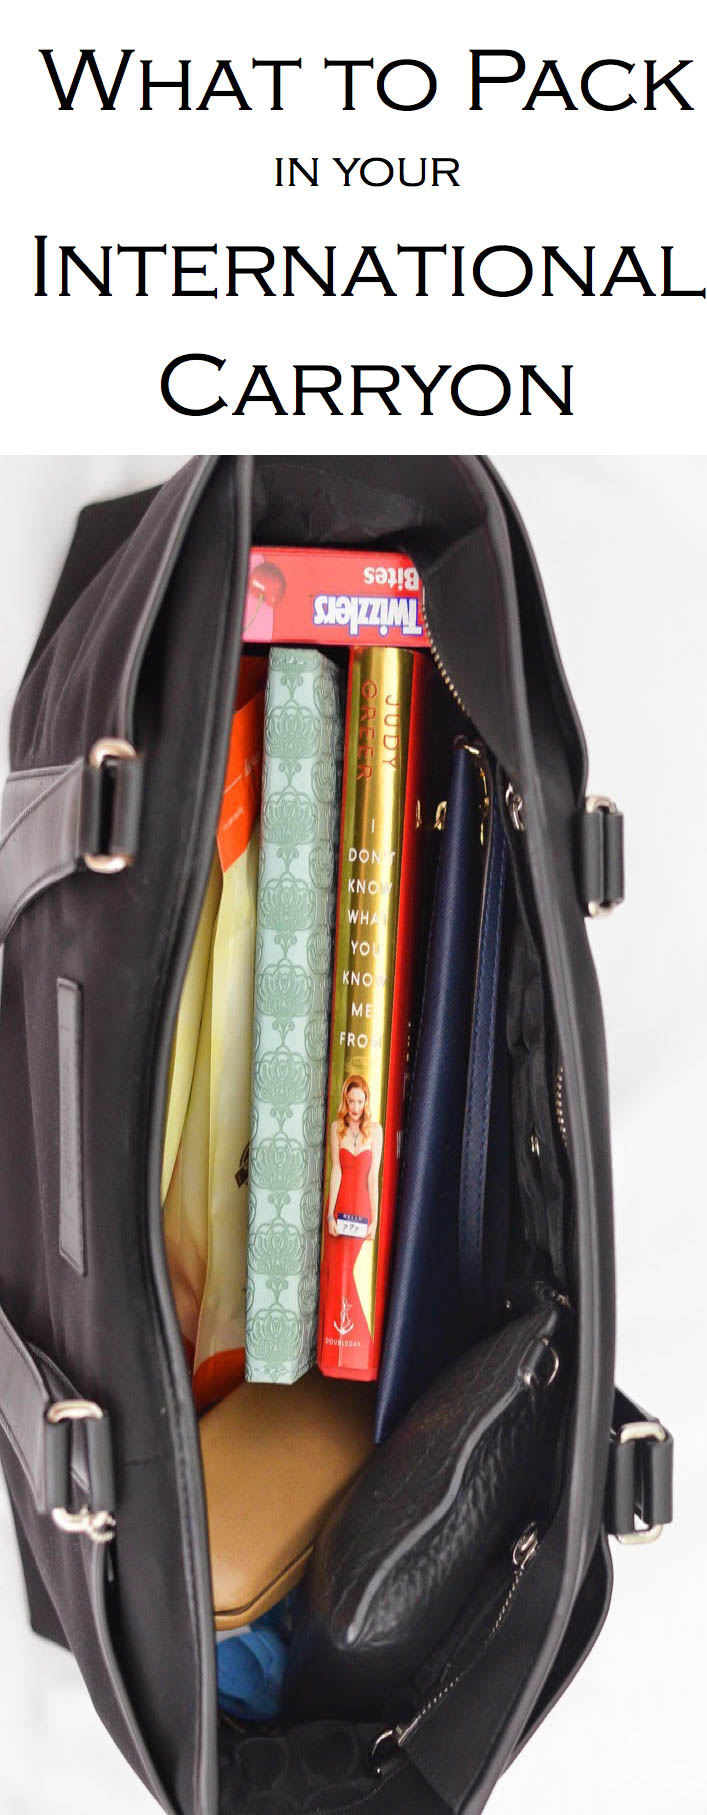 WHAT TO PACK IN YOUR INTERNATIONAL CARRYON #internationaltravel #intltravel #travel #traveltips #carryon #plane #planetravel #longtrip #travelguide